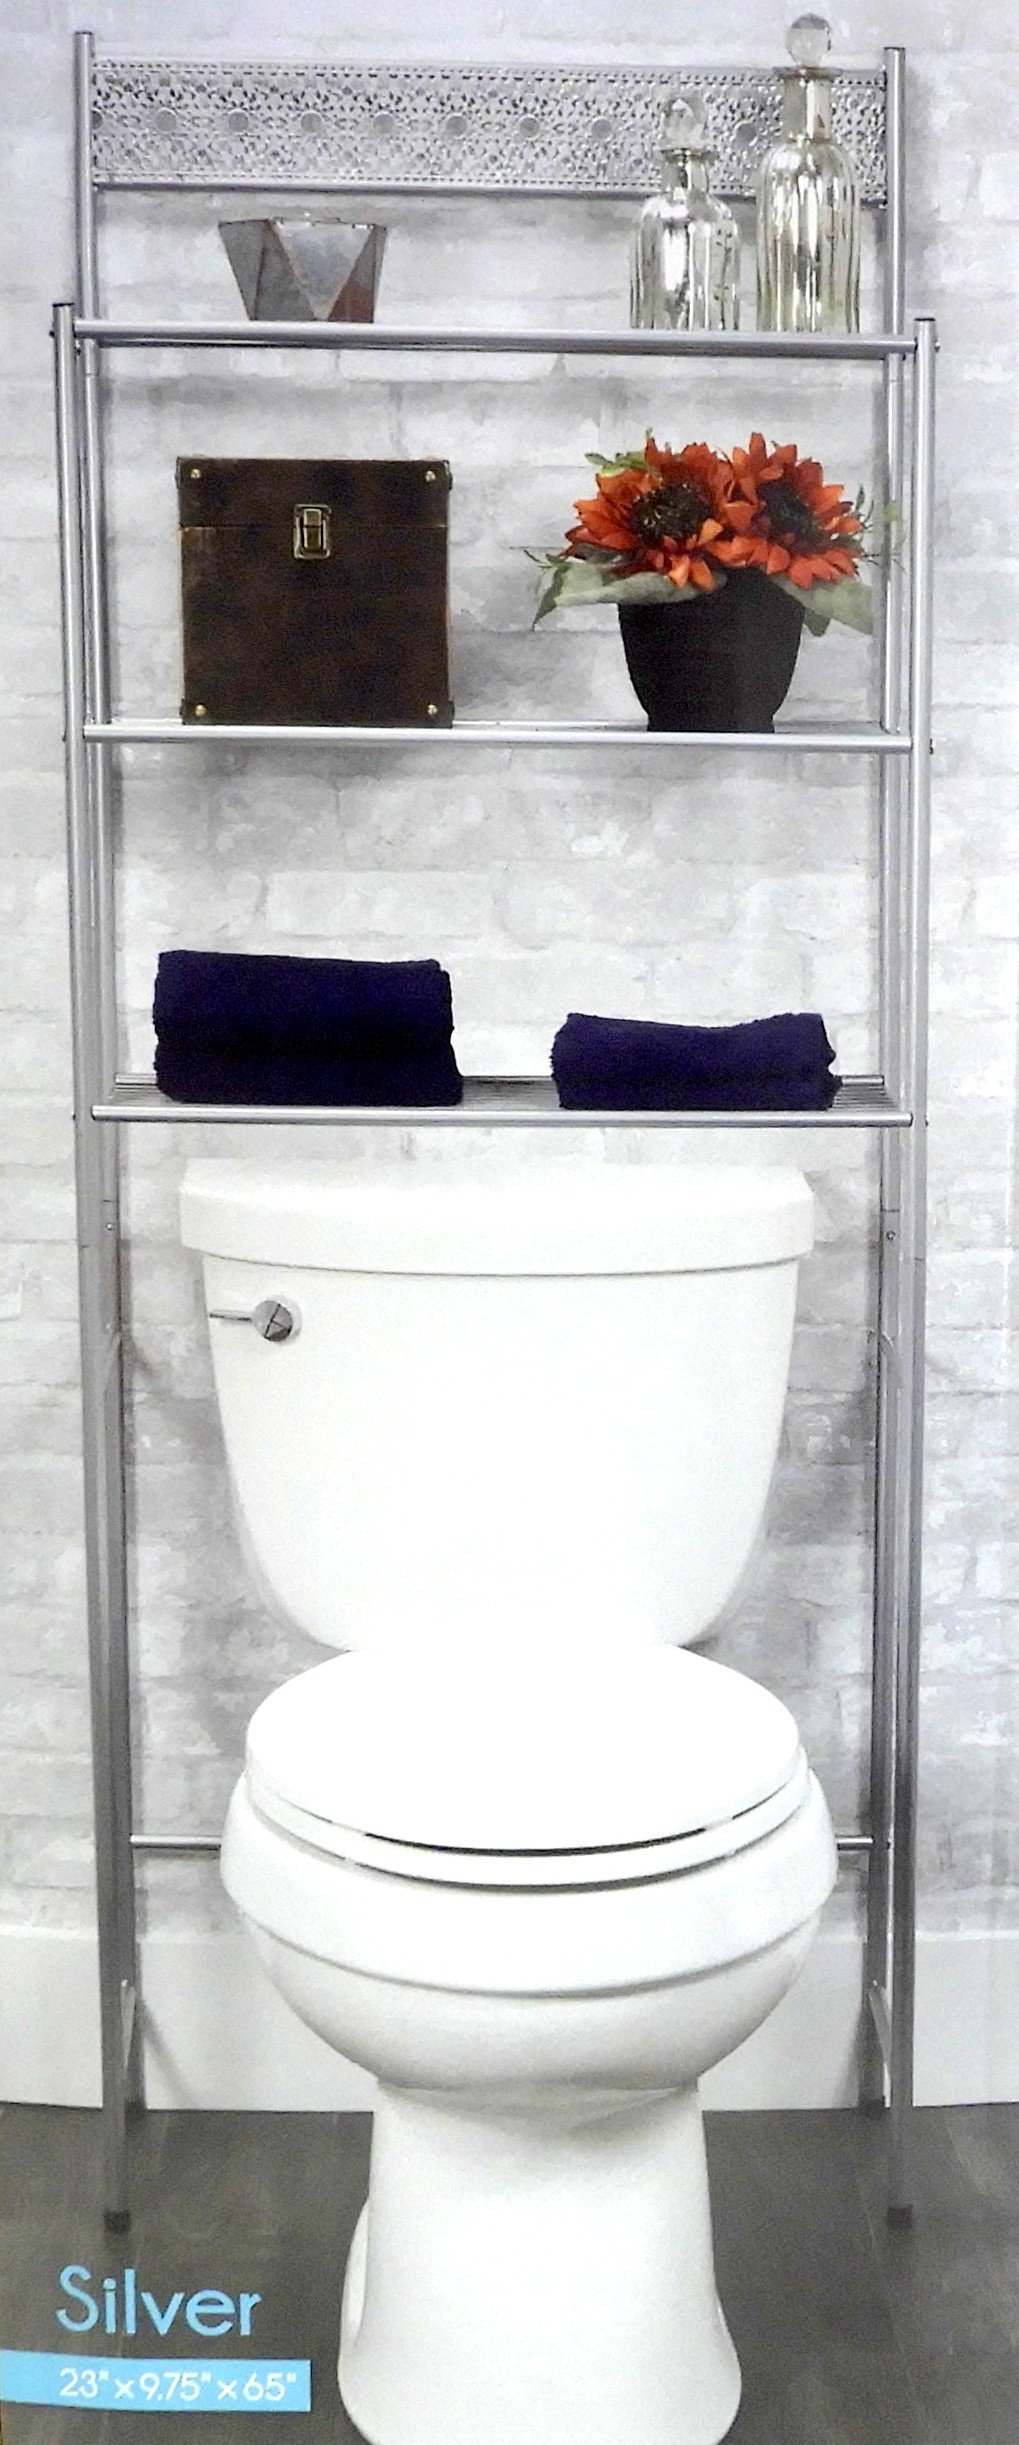 DINY Home Collections 3 Shelf Over The Toilet Spacesaver Easy to Assemble (Silver) 65'' Tall